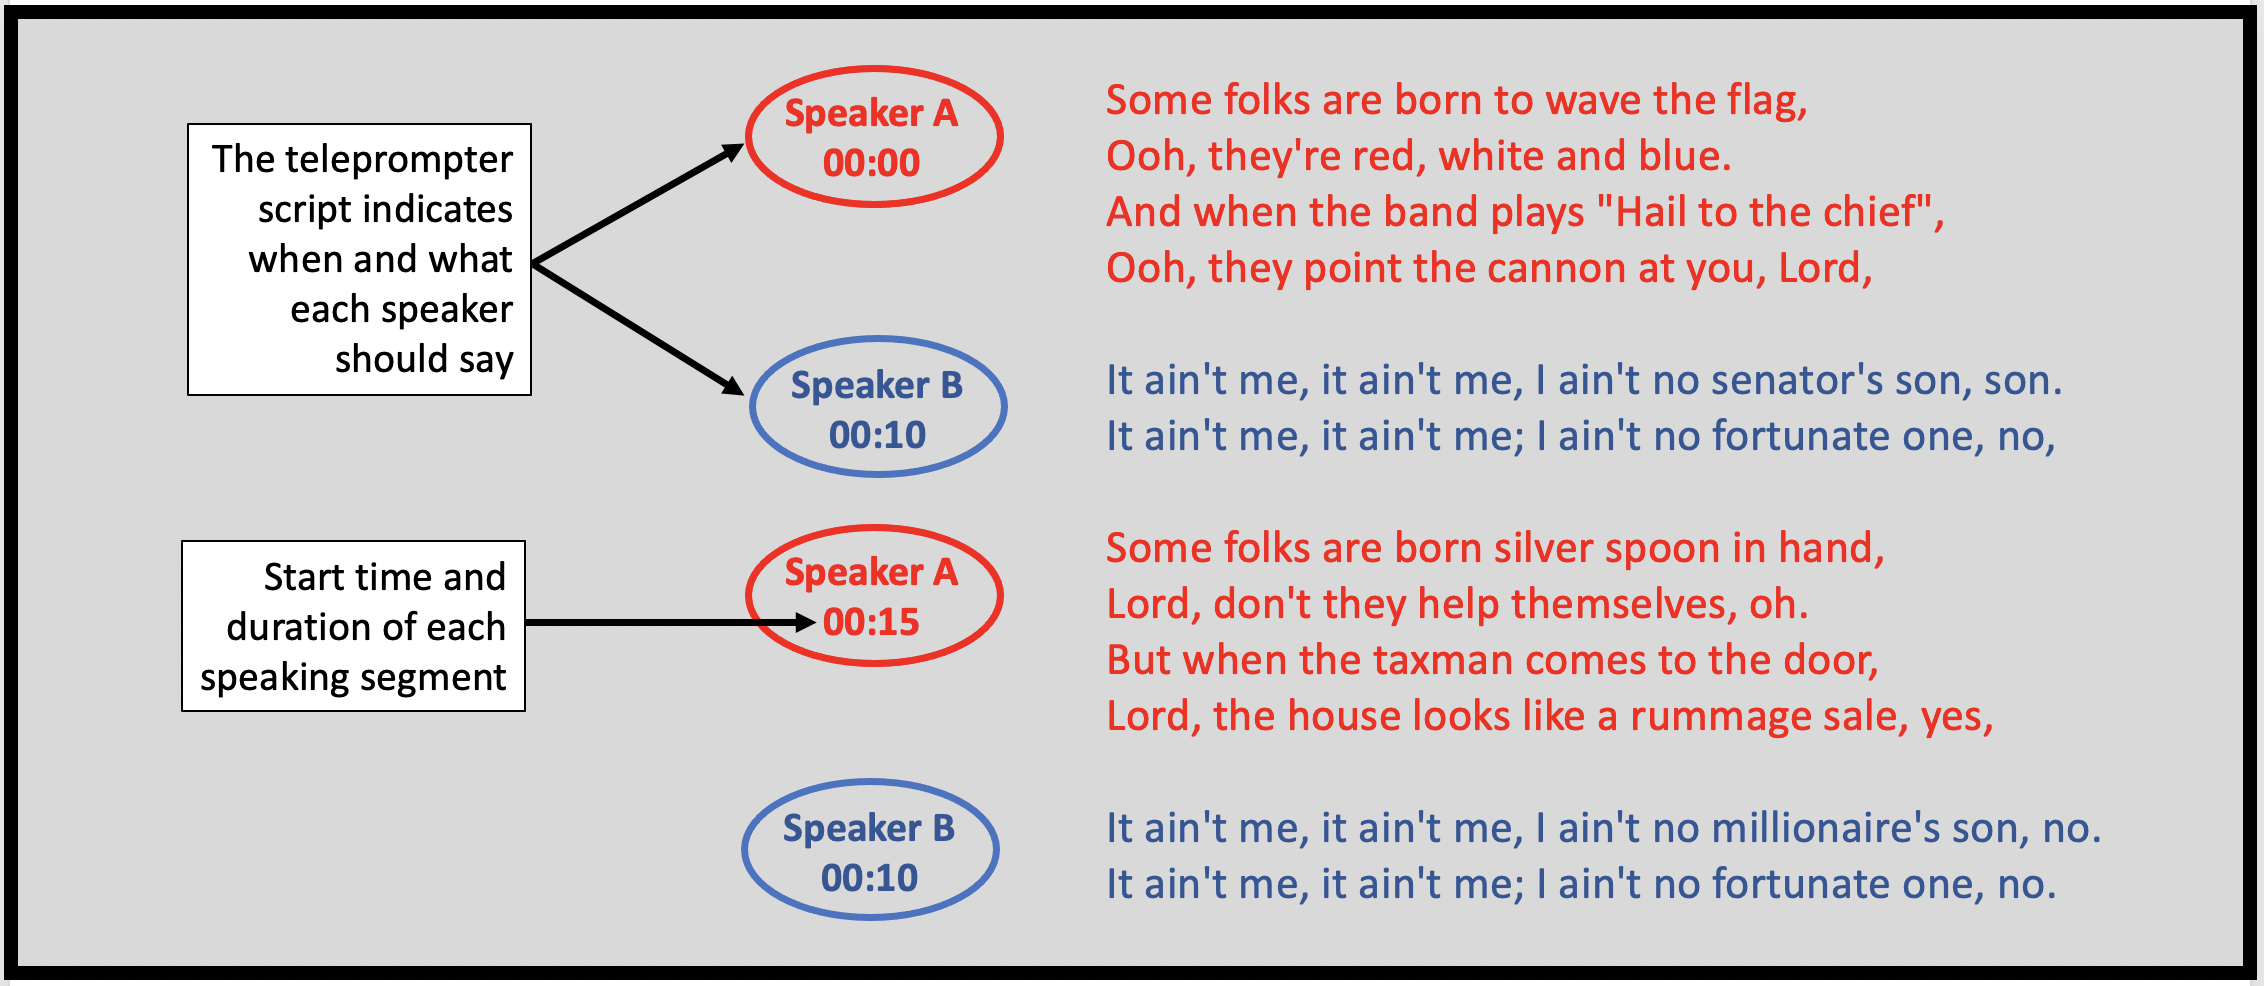 A good teleprompter script indicate when and what each presenter will say.